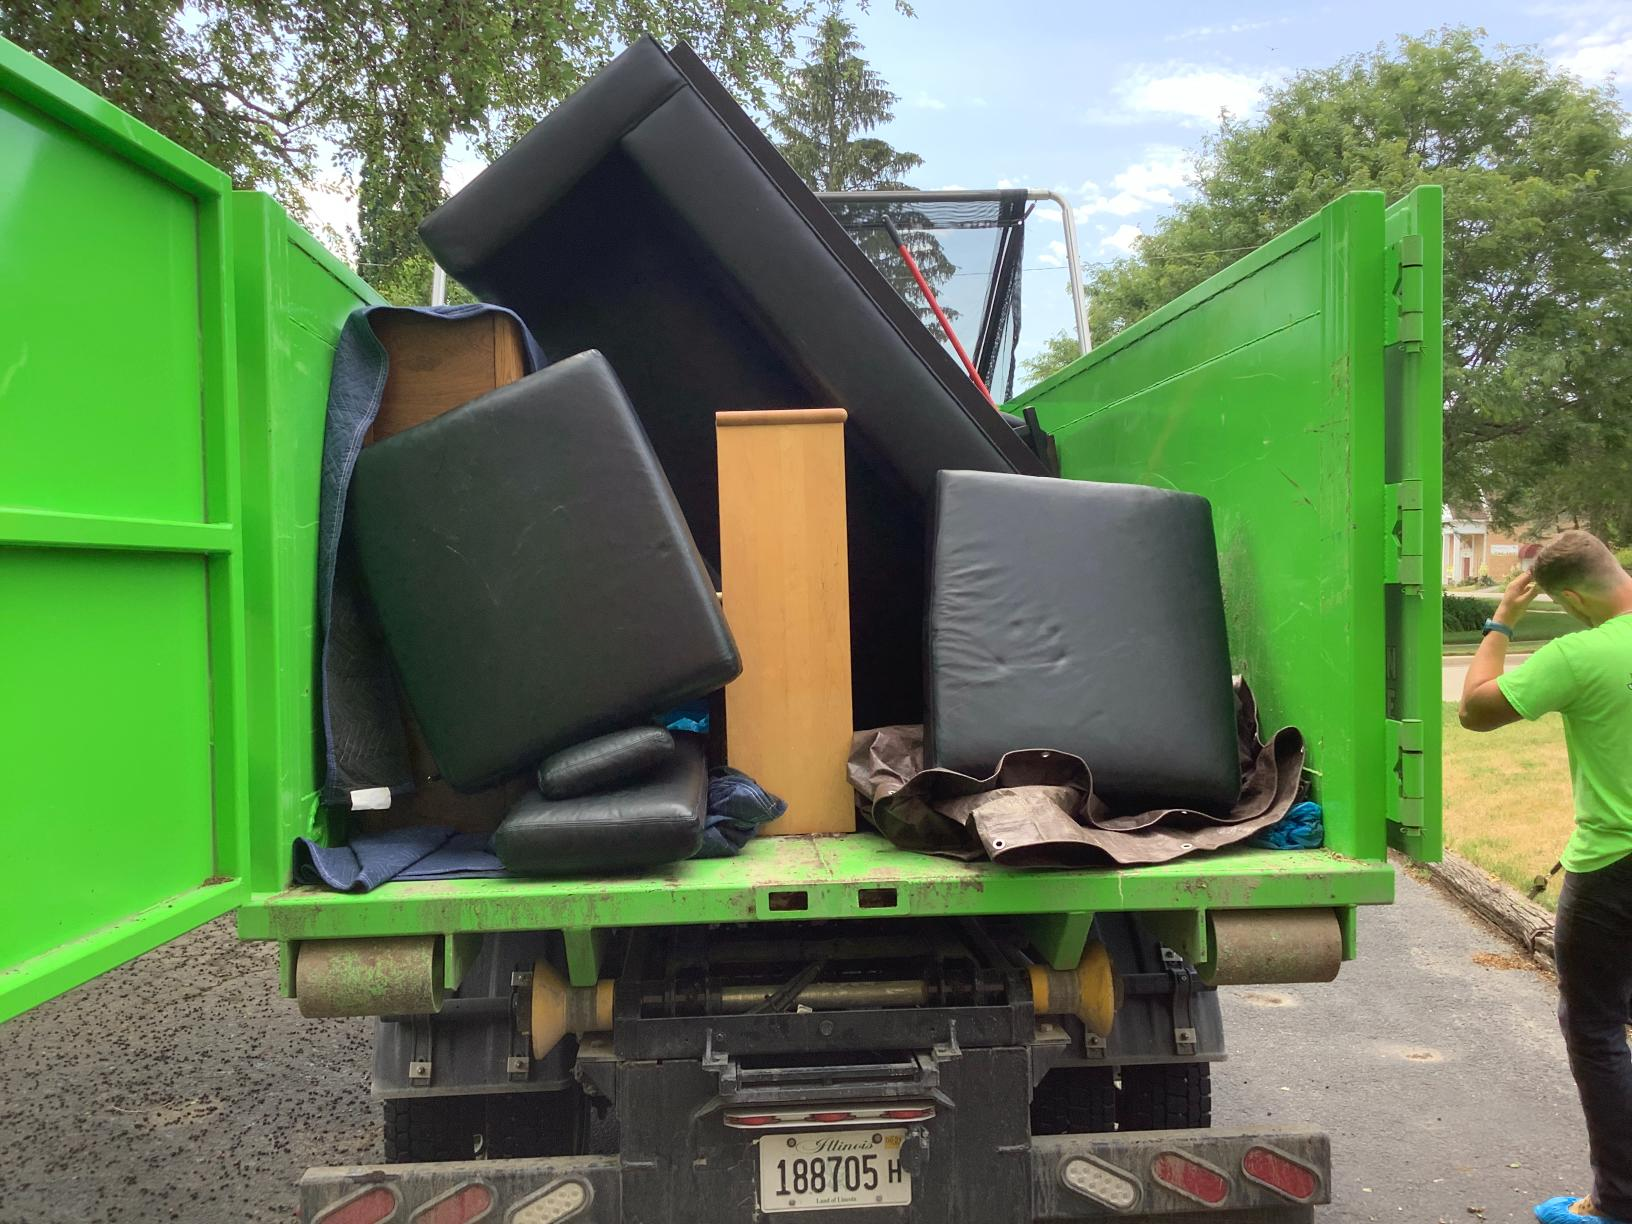 We help you get rid of the stuff you don't need, in an eco-friendly way!